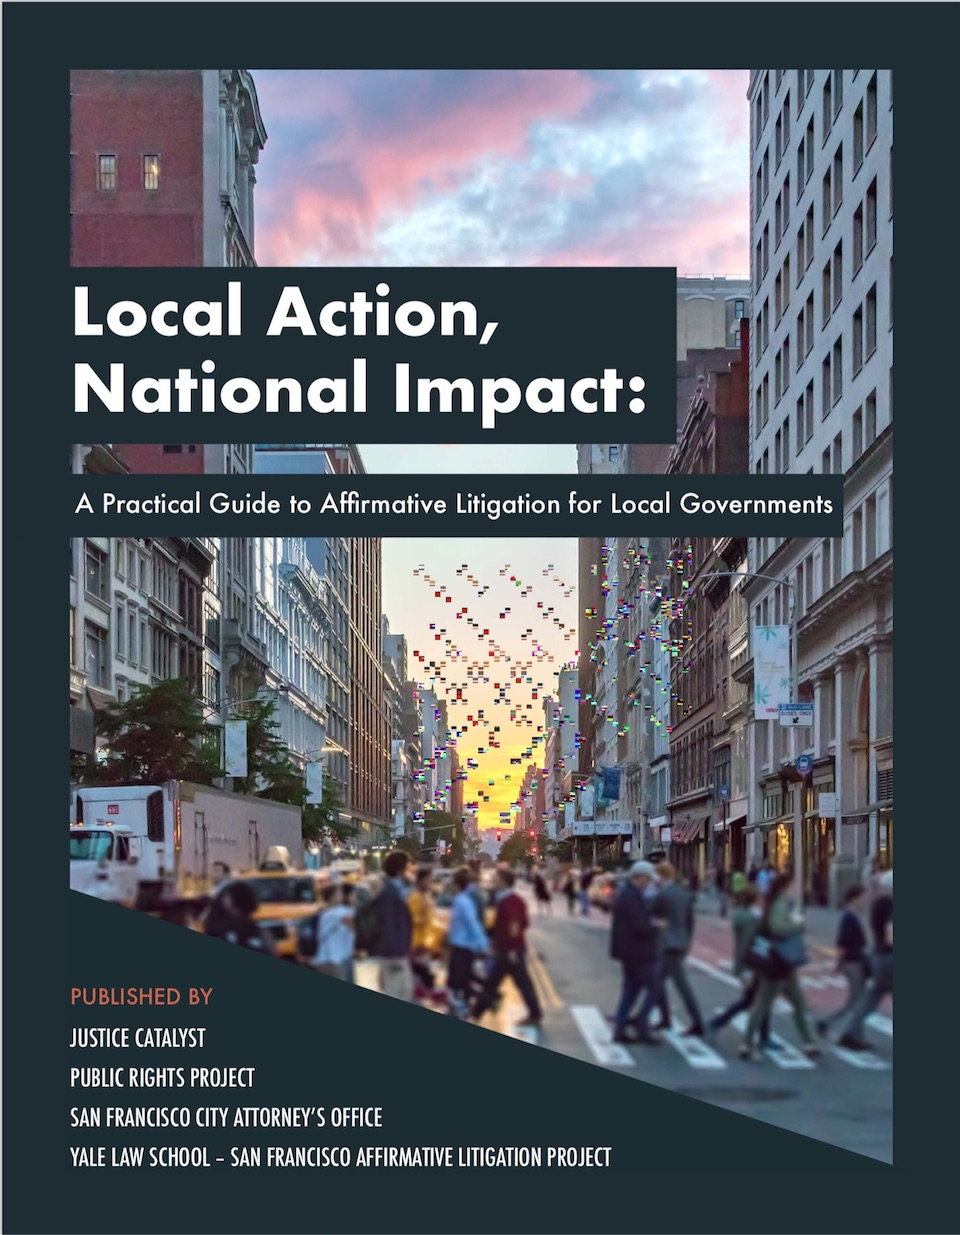 Local Action, National Impact: A Practical Guide to Affirmative Litigation for Local Governments